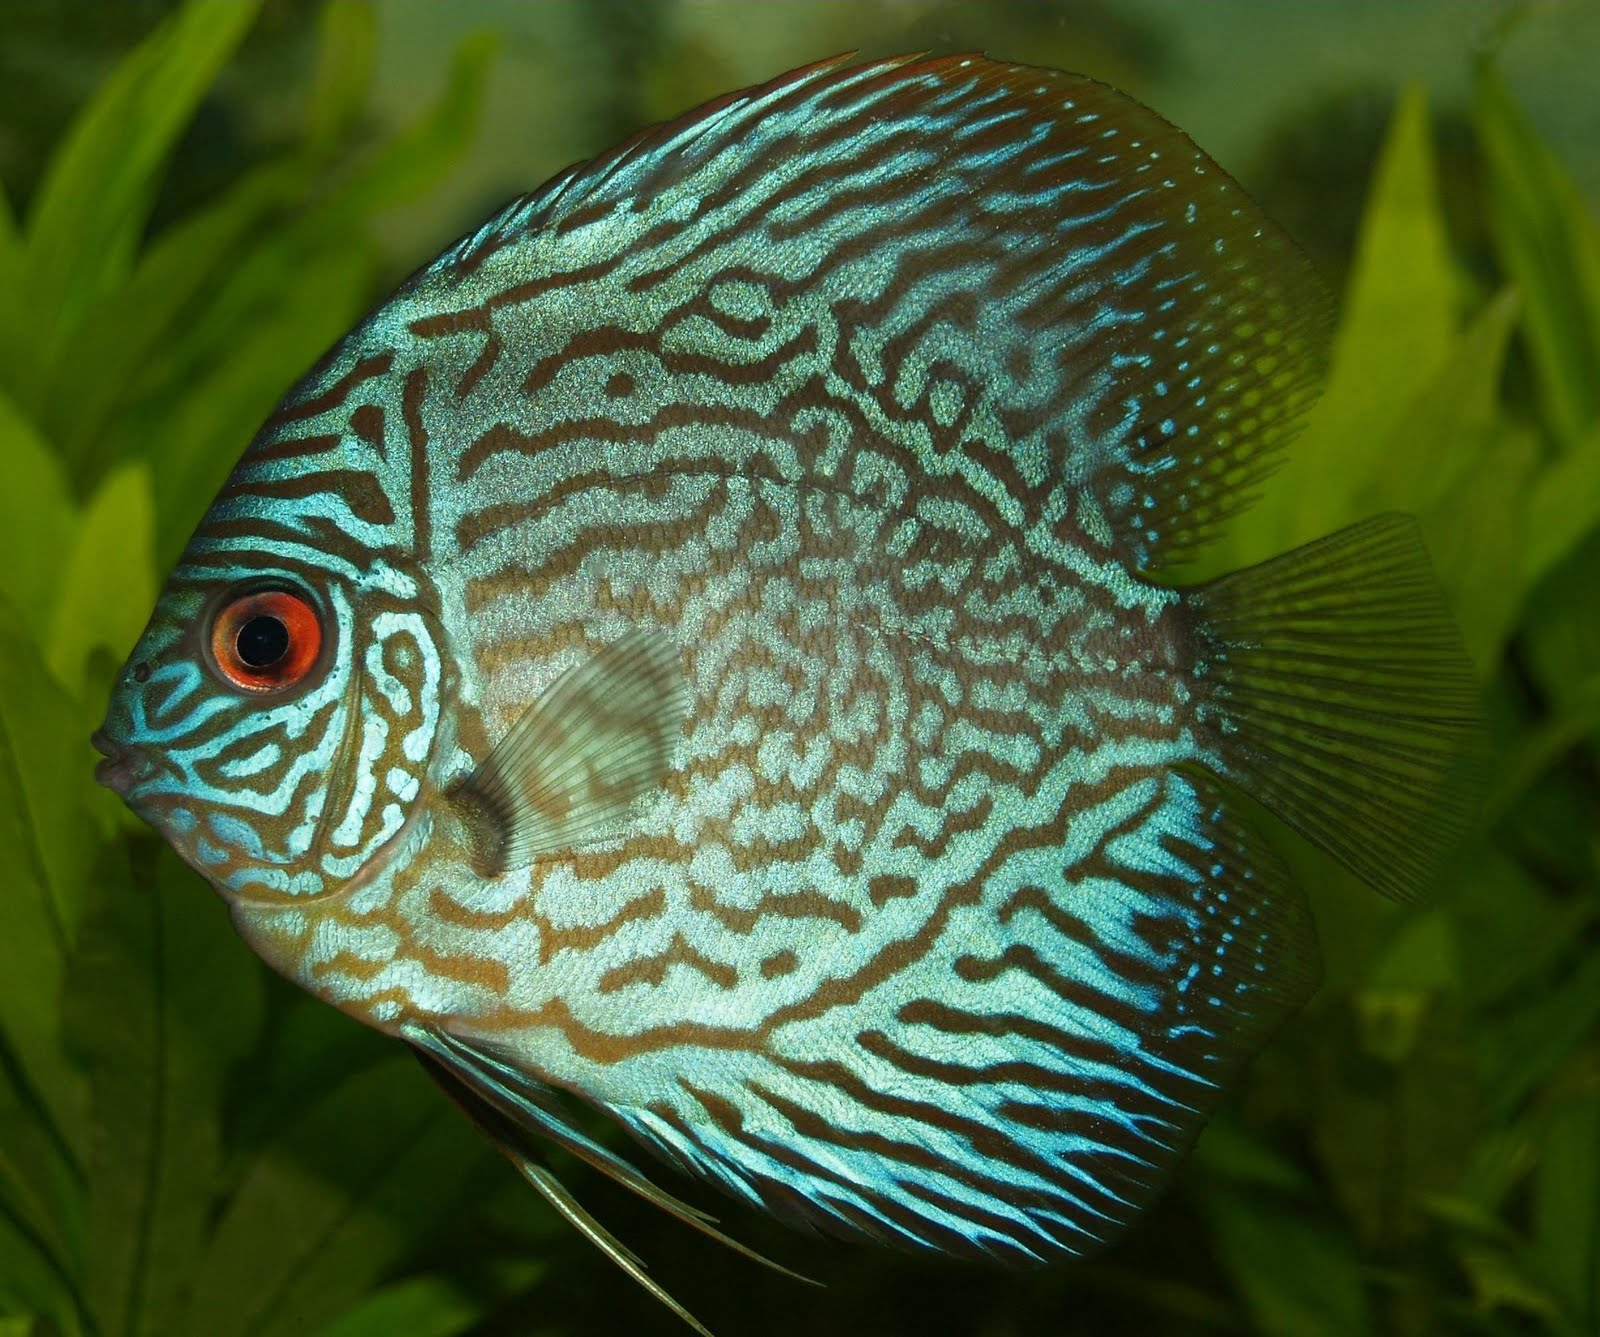 Public domain photos and images discus fish of the genus for Coolest freshwater fish